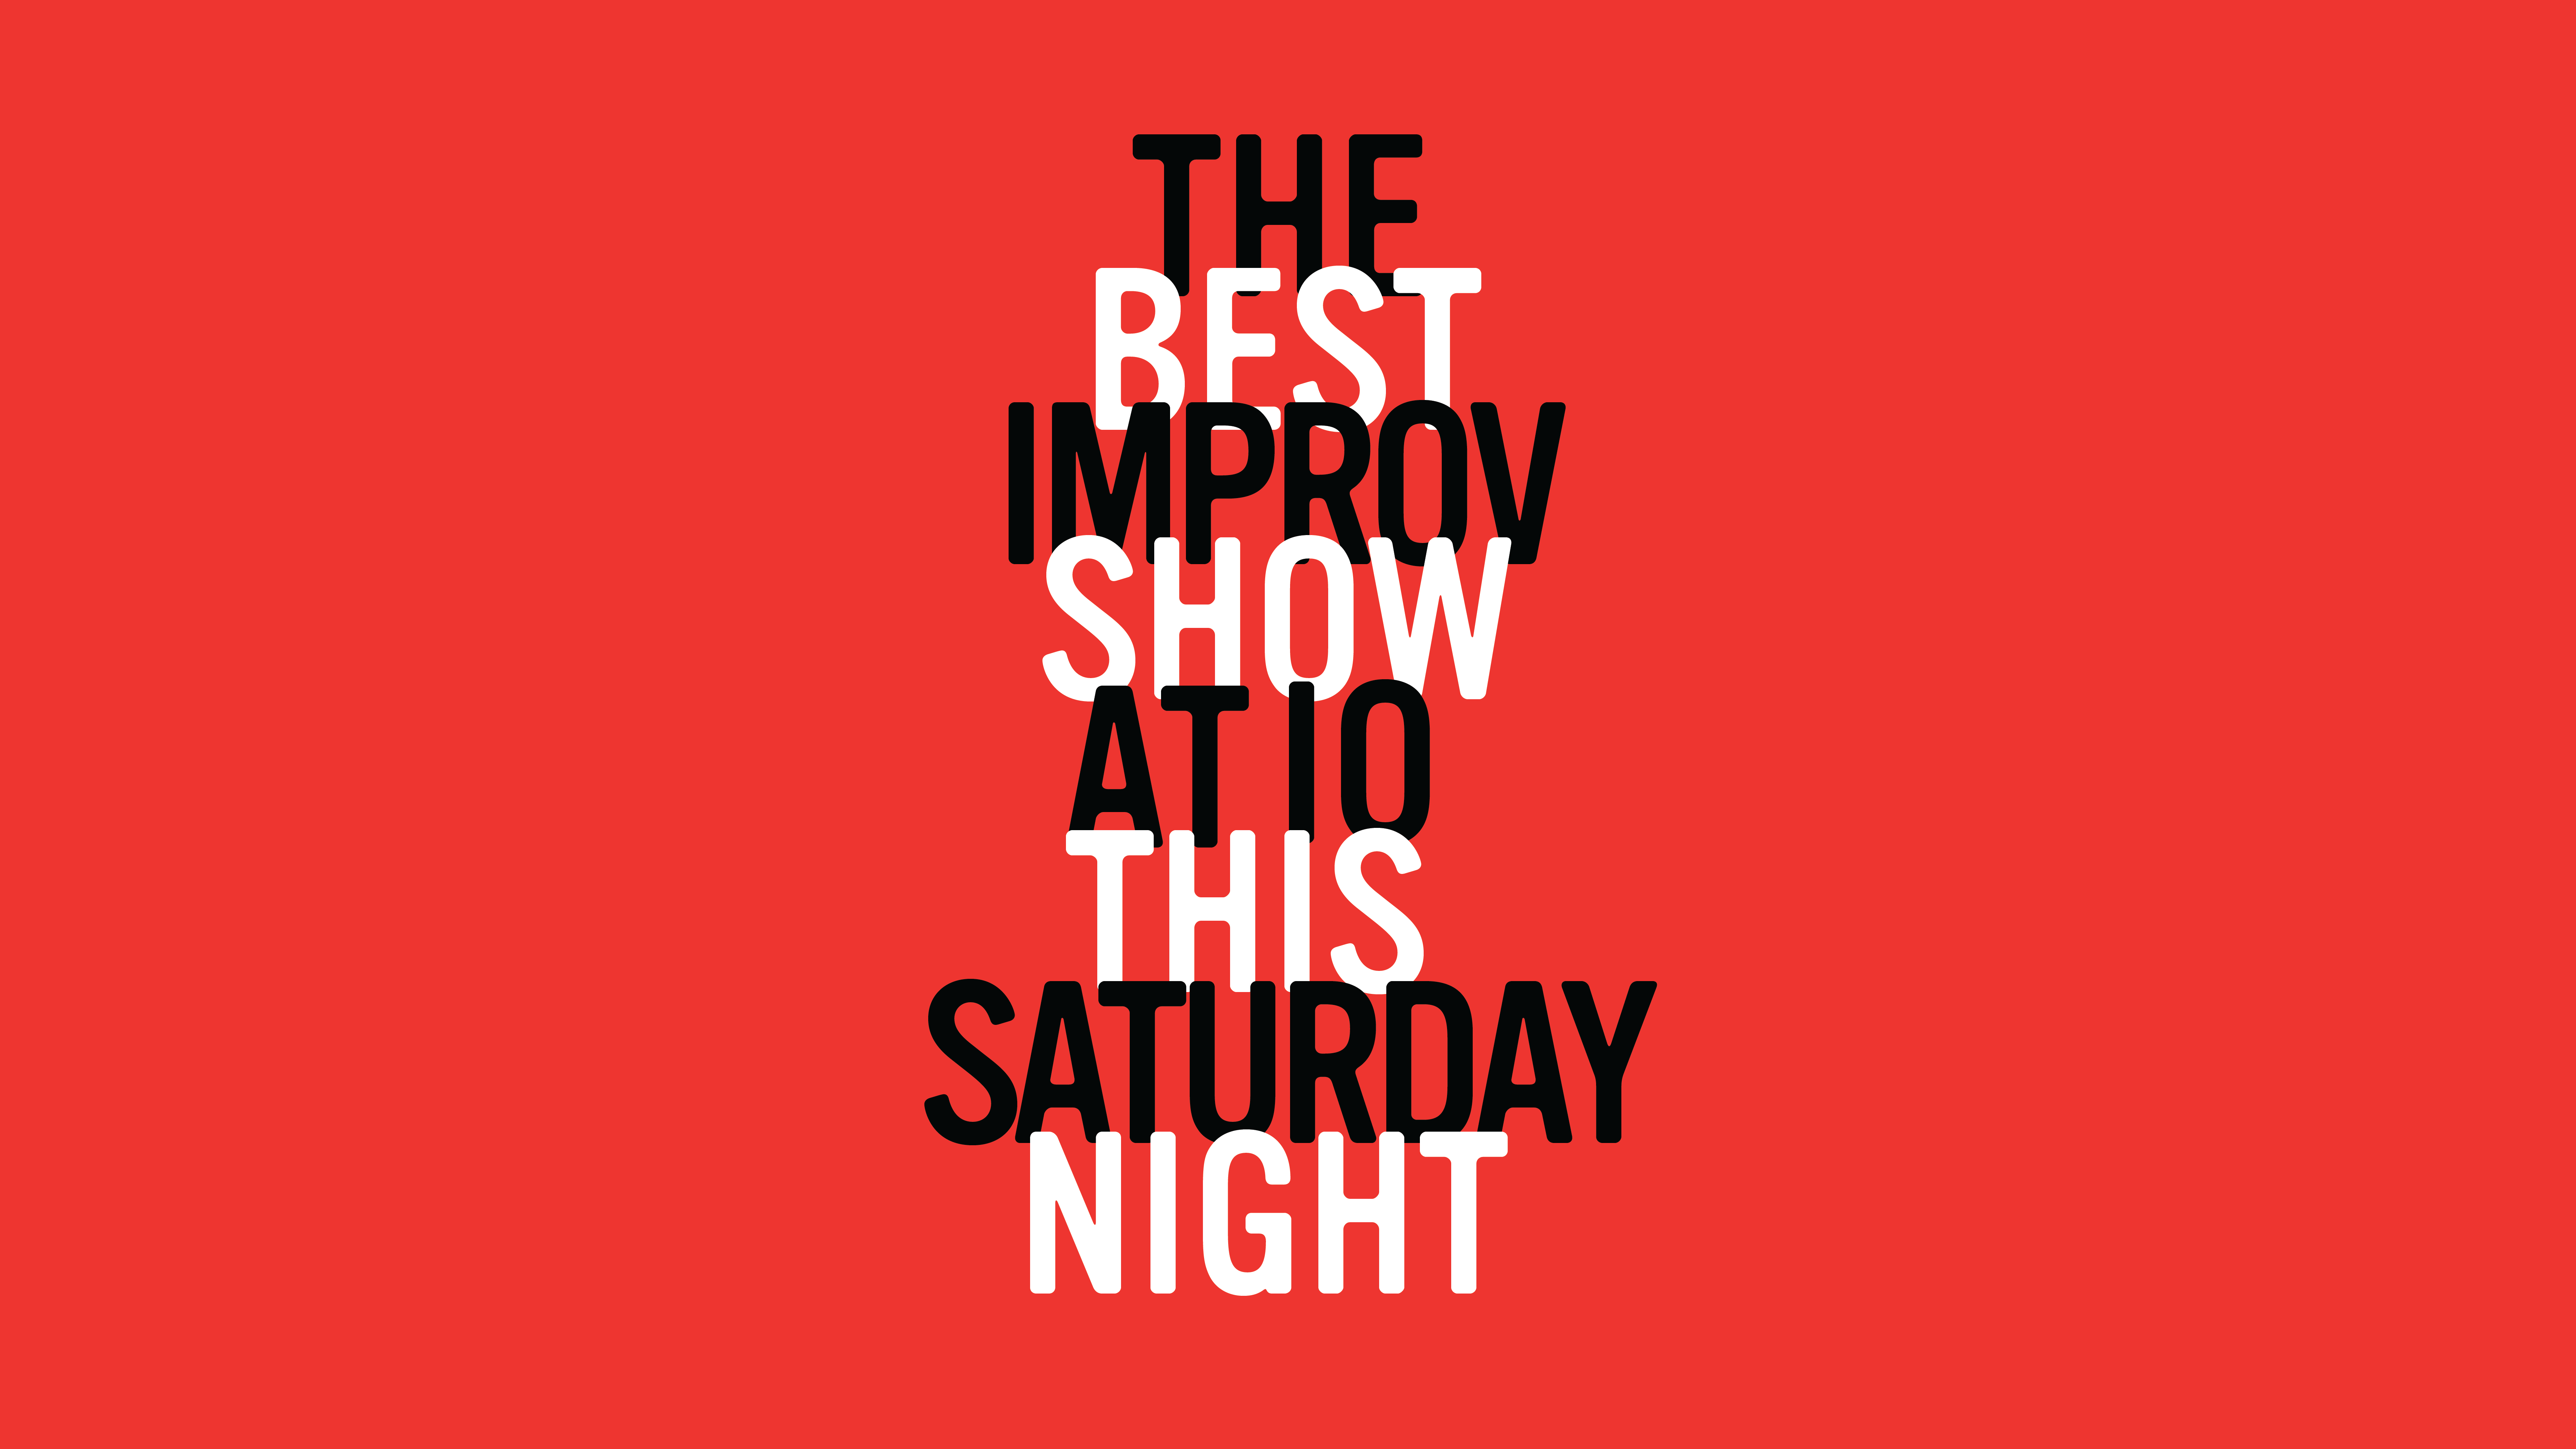 The Best Improv Show At iO This Saturday Night